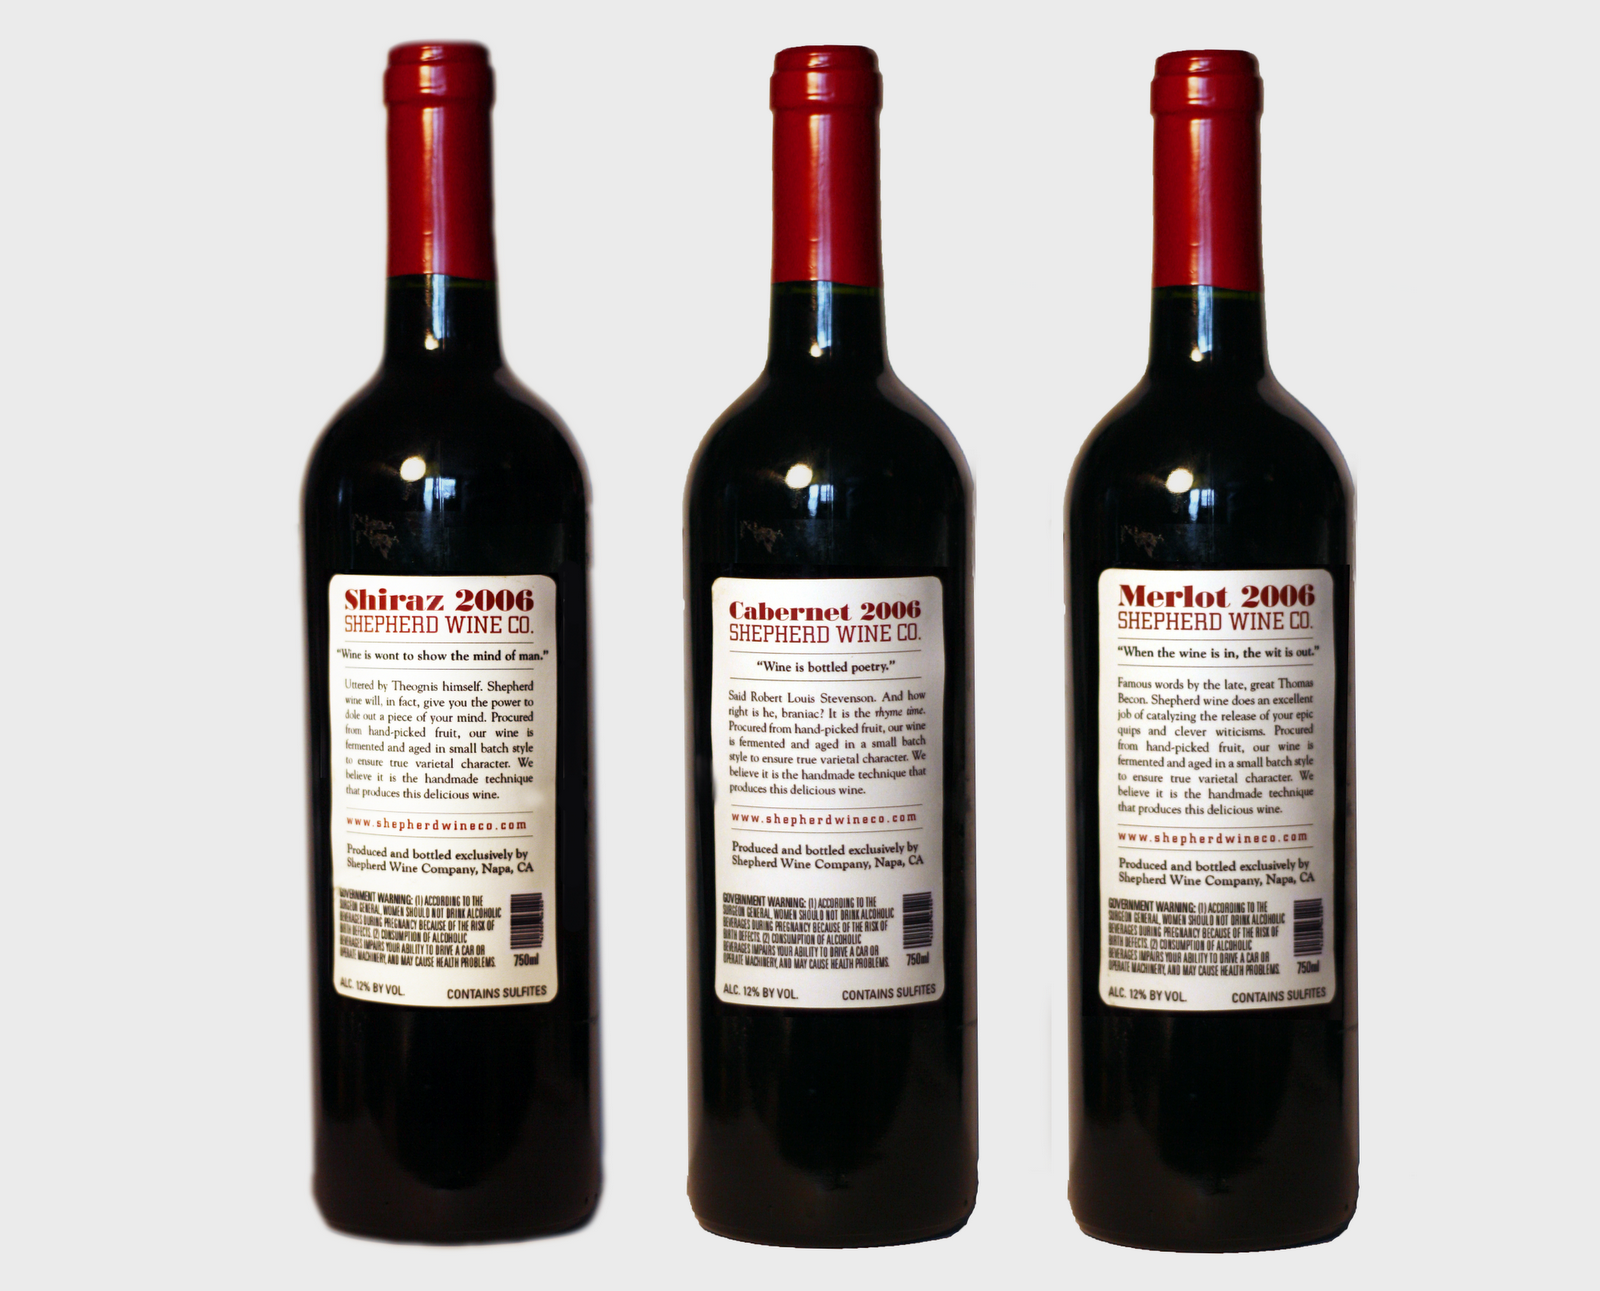 Polly Mimi: wine bottle quotations line